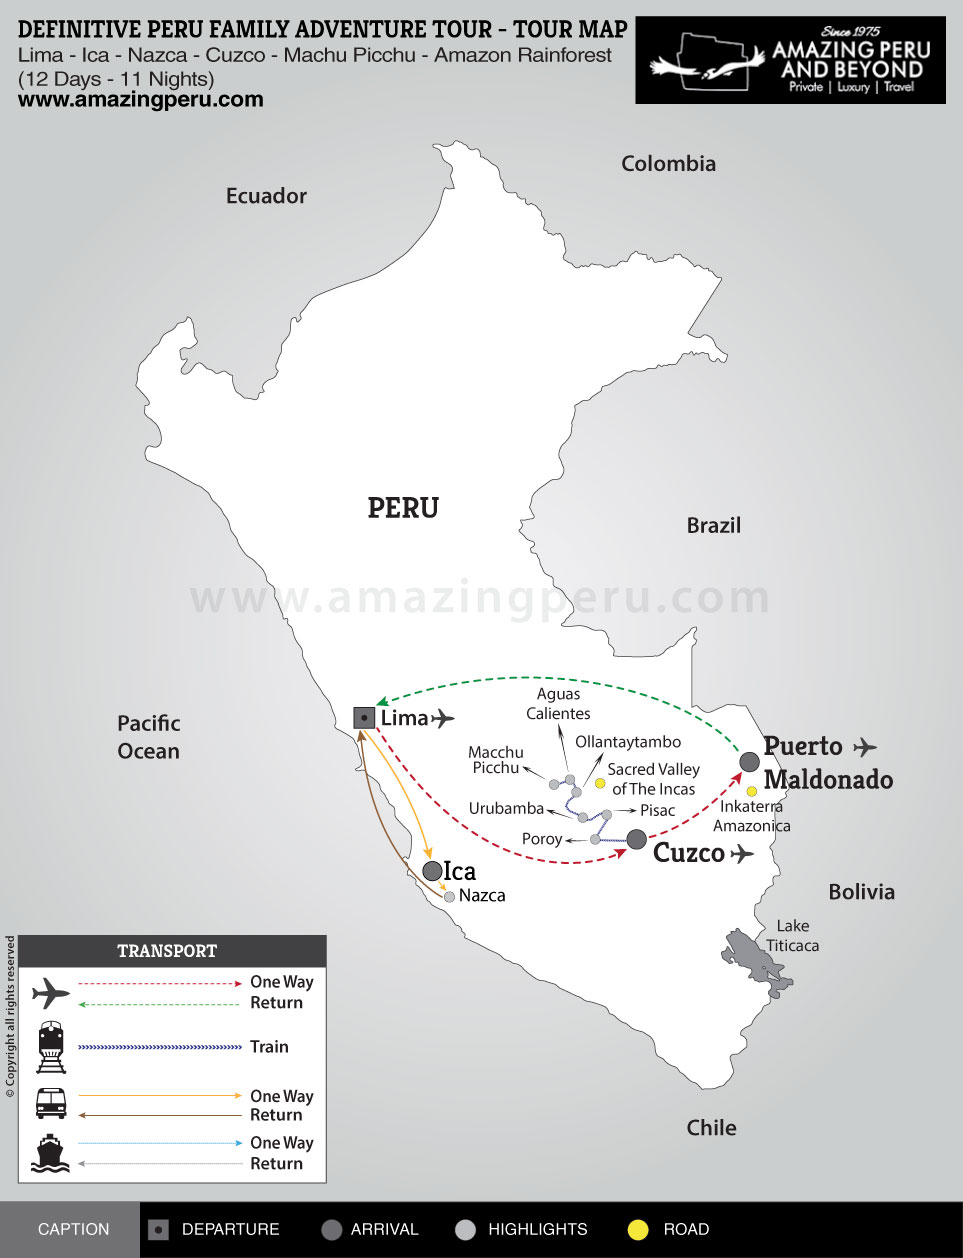 Definitive Peru Family Adventure Tour - 12 days / 11 nights.